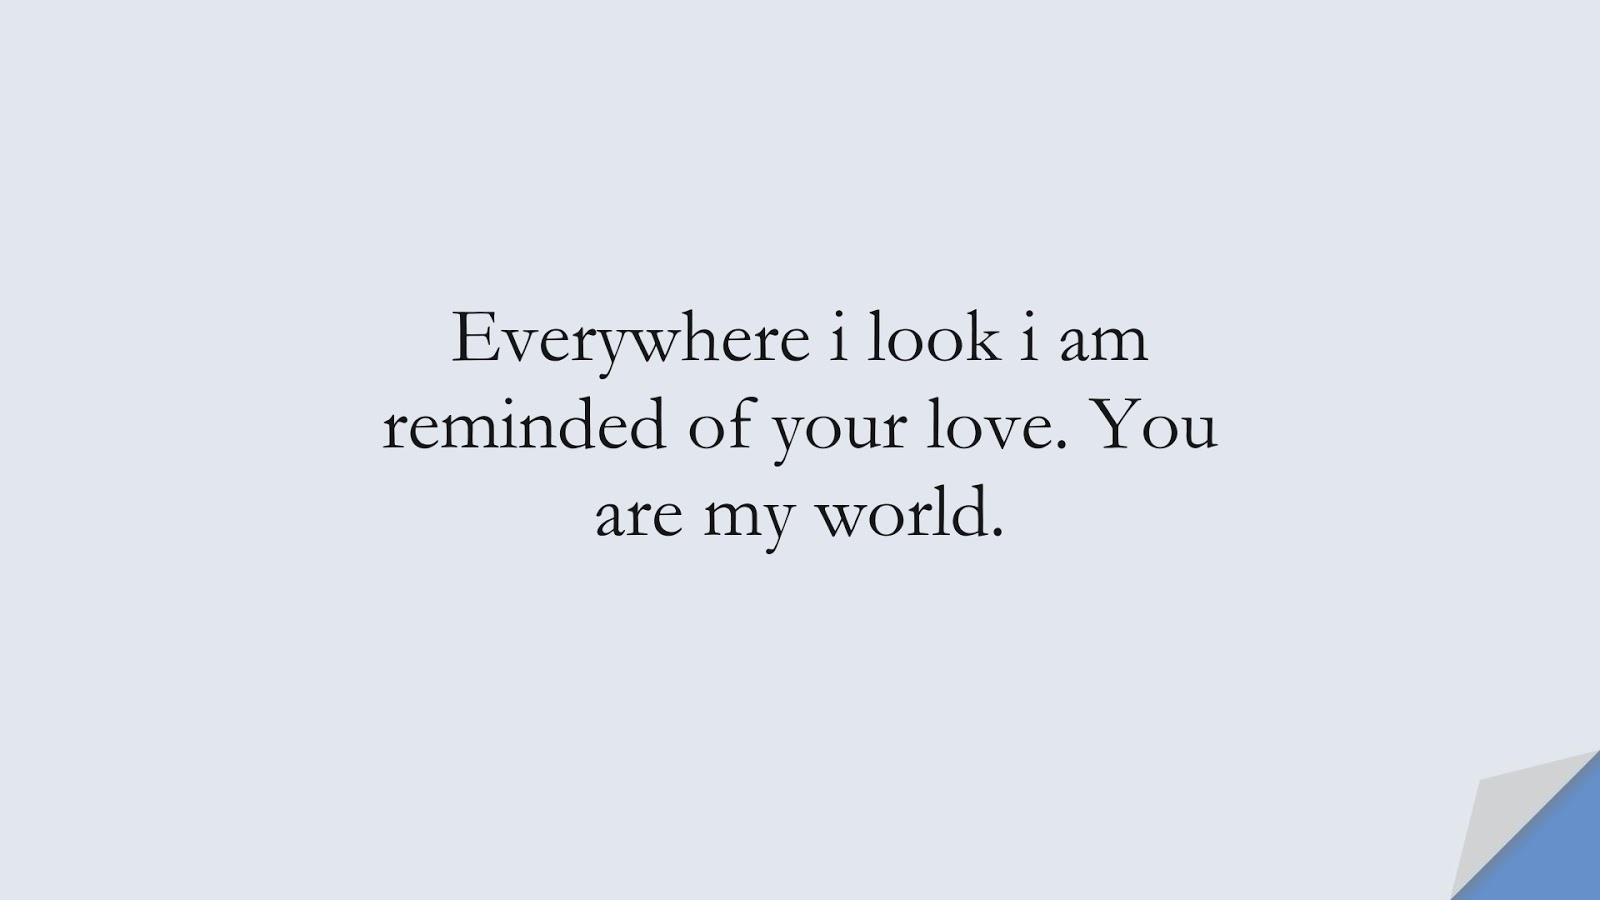 Everywhere i look i am reminded of your love. You are my world.FALSE